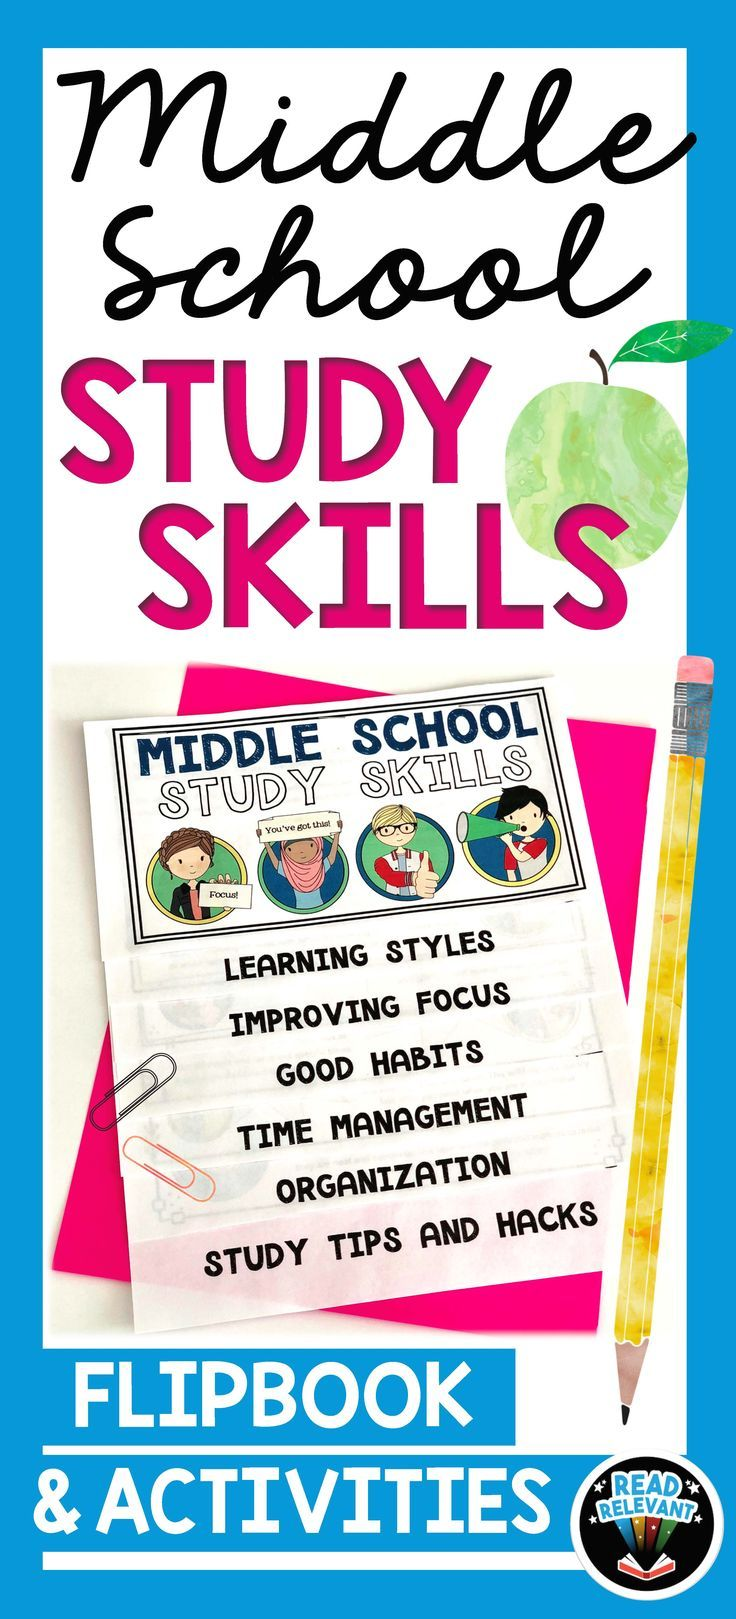 Help your middle schoolers start the year strong with better study skills. Topics covered include time management, organization, good habits, study skills and hacks, and learning styles. In addition, there are five interactive activities for the students to complete.